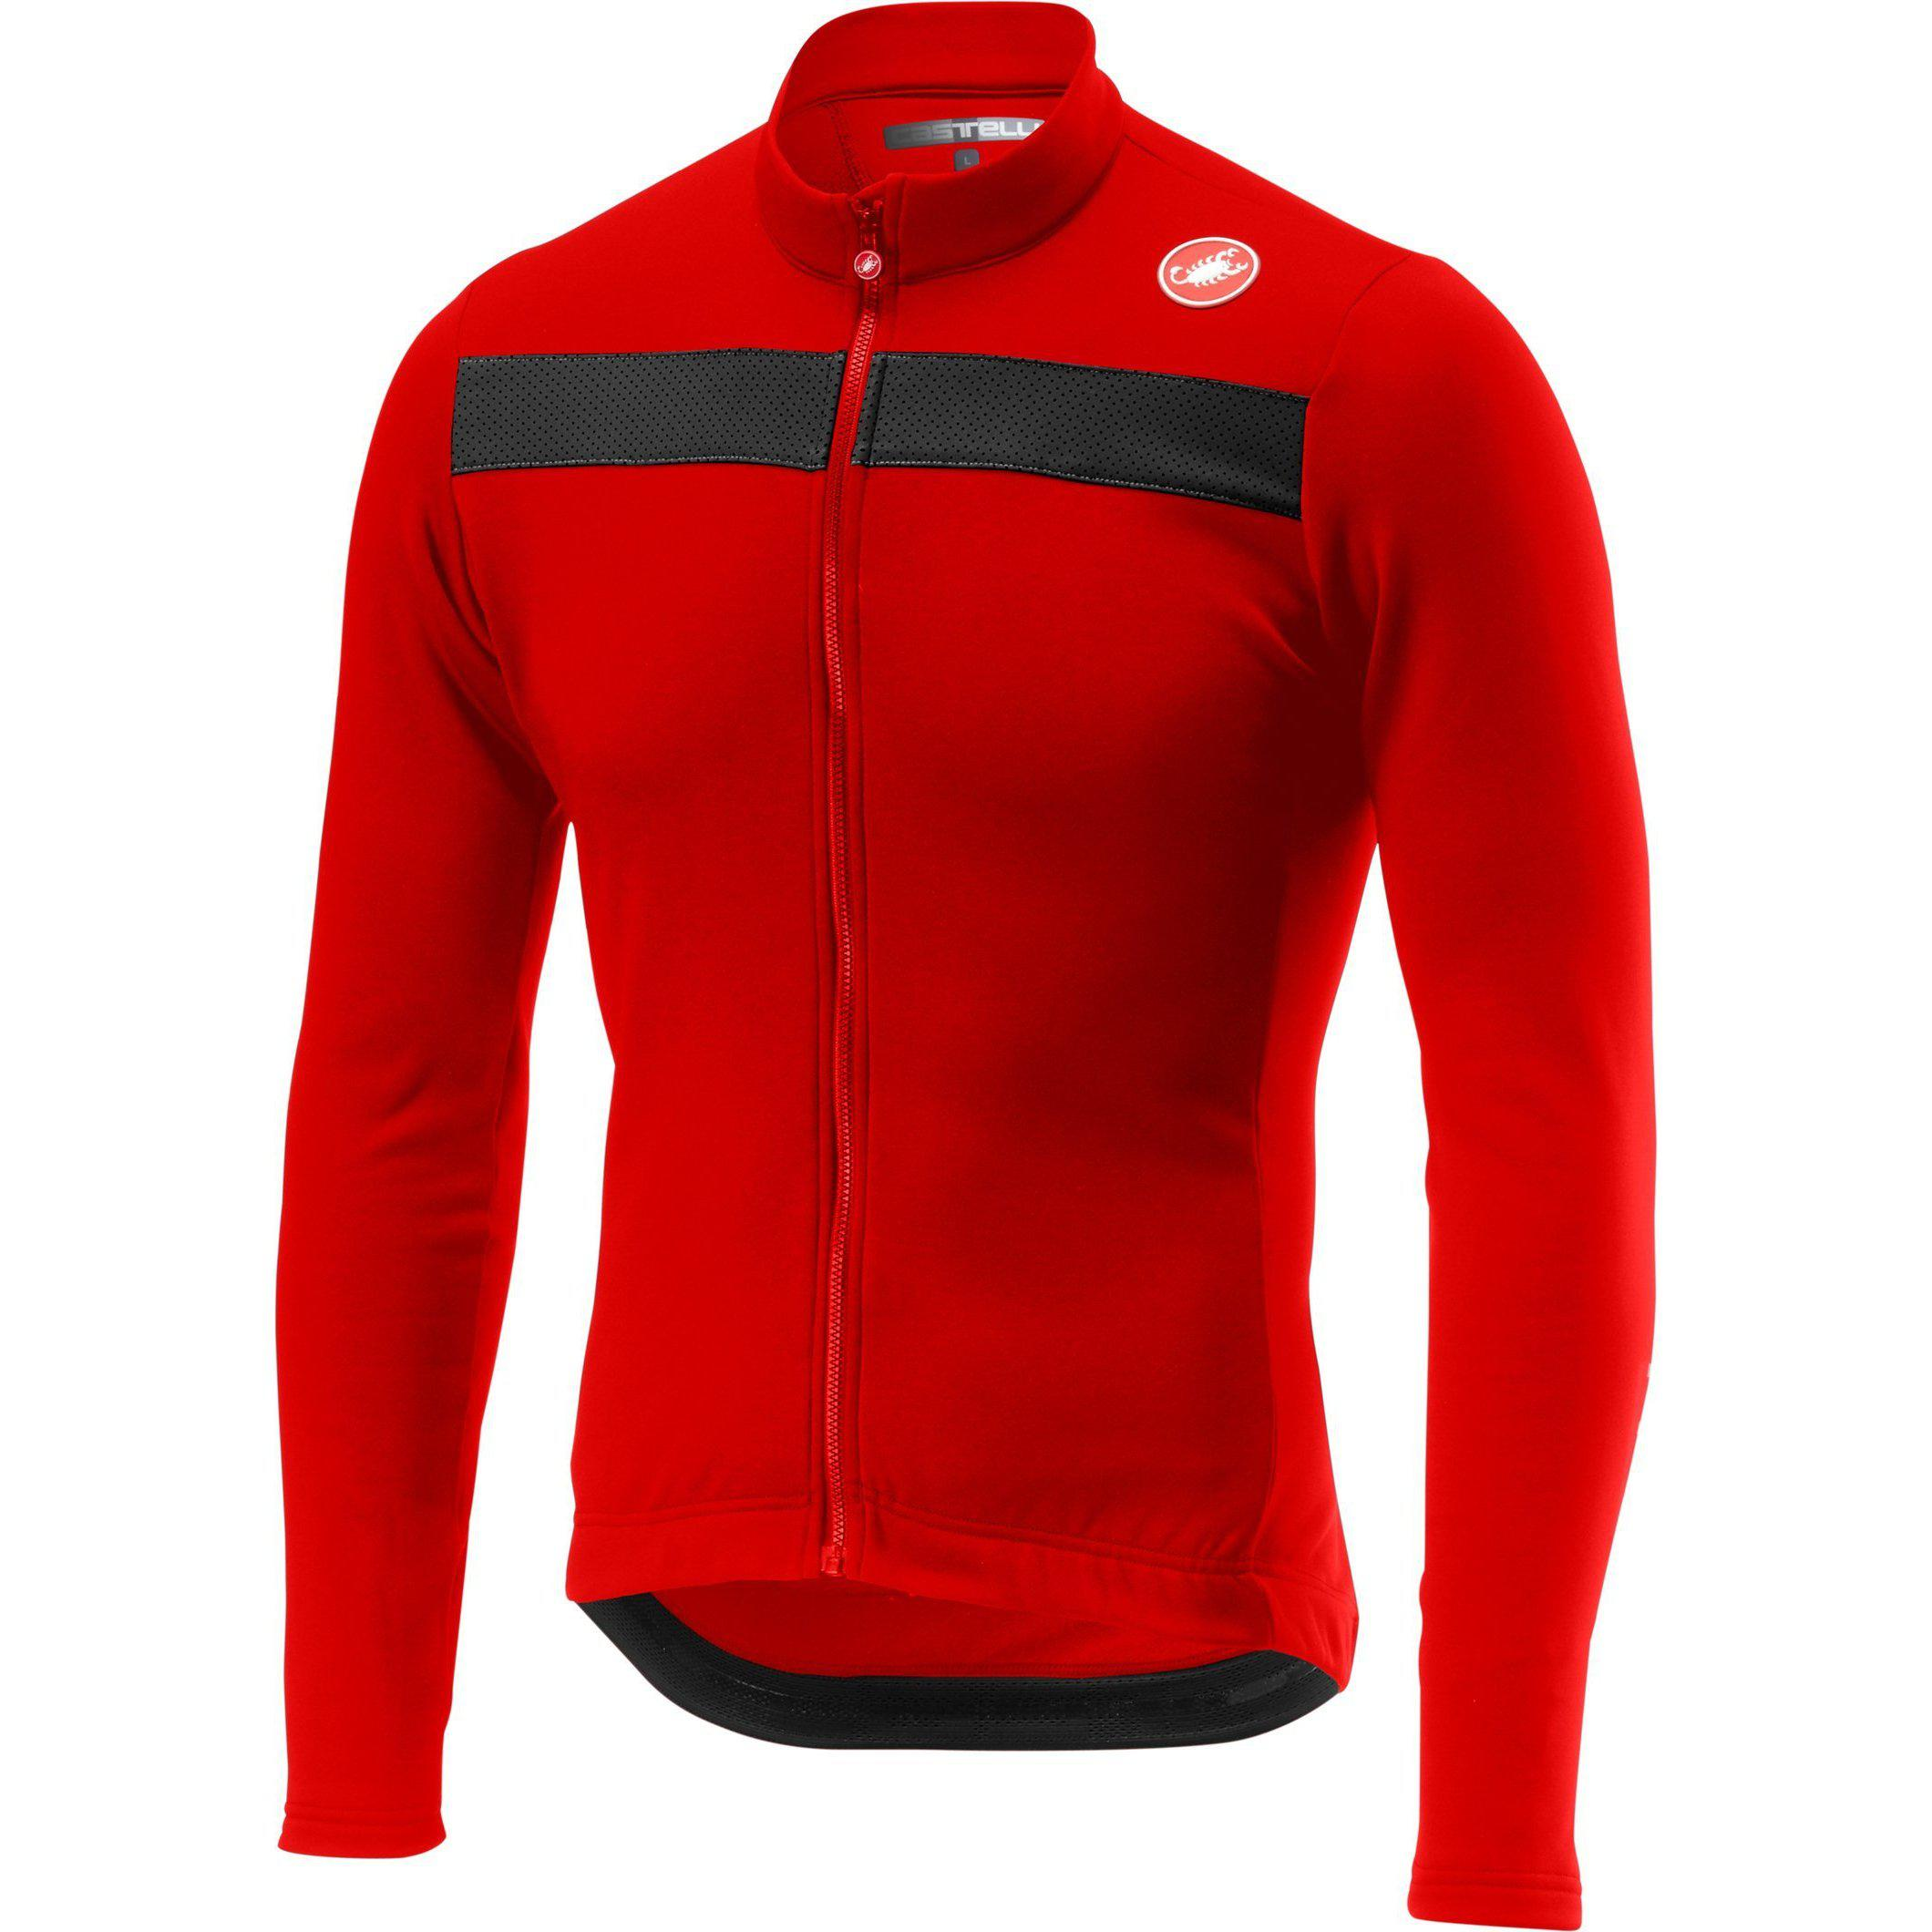 Castelli-Castelli Puro 3 Jersey-Red-XS-CS185110231-saddleback-elite-performance-cycling